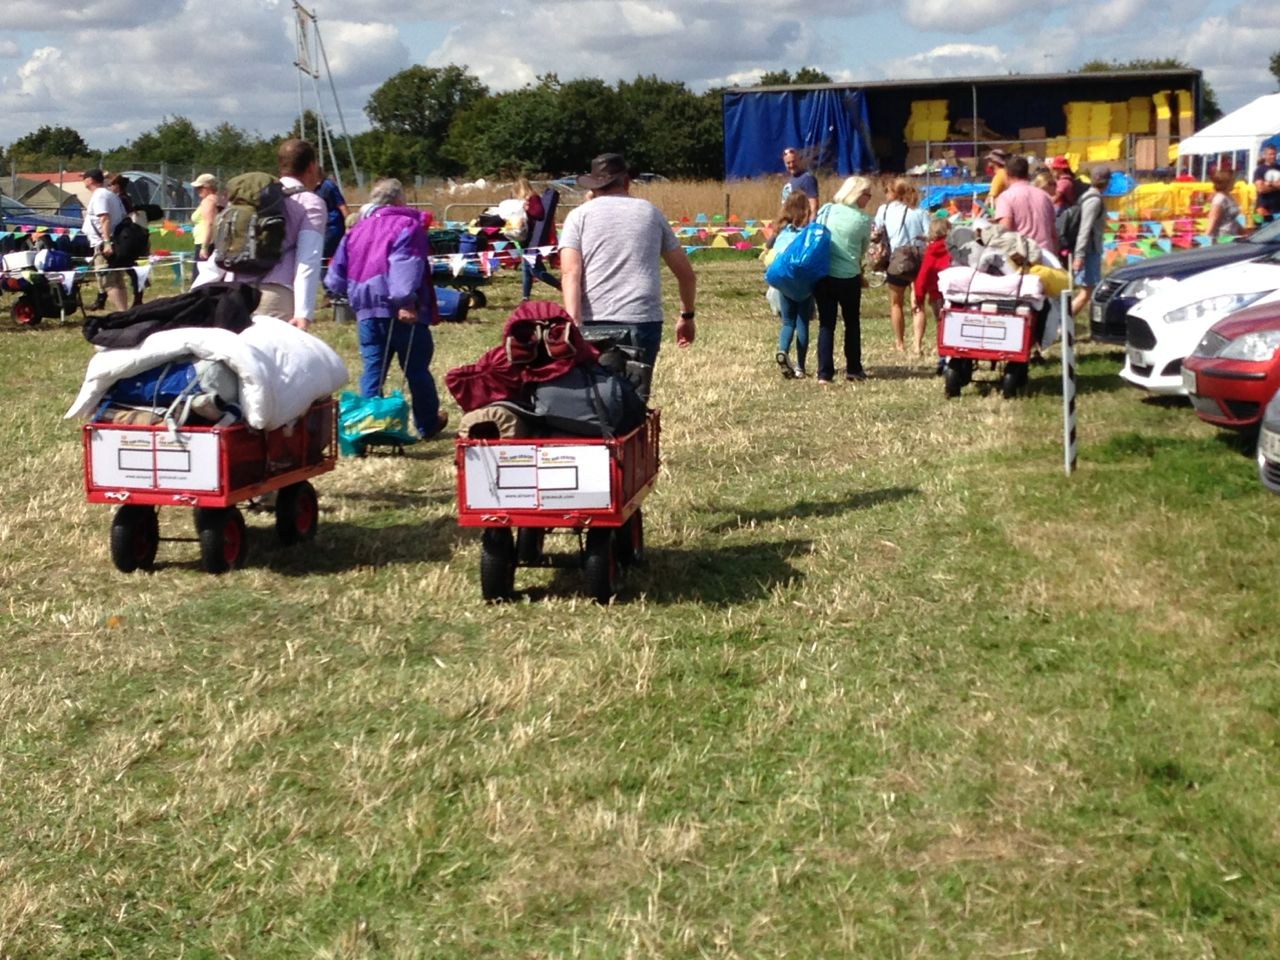 Trolley Hire for Camping at Carfest South